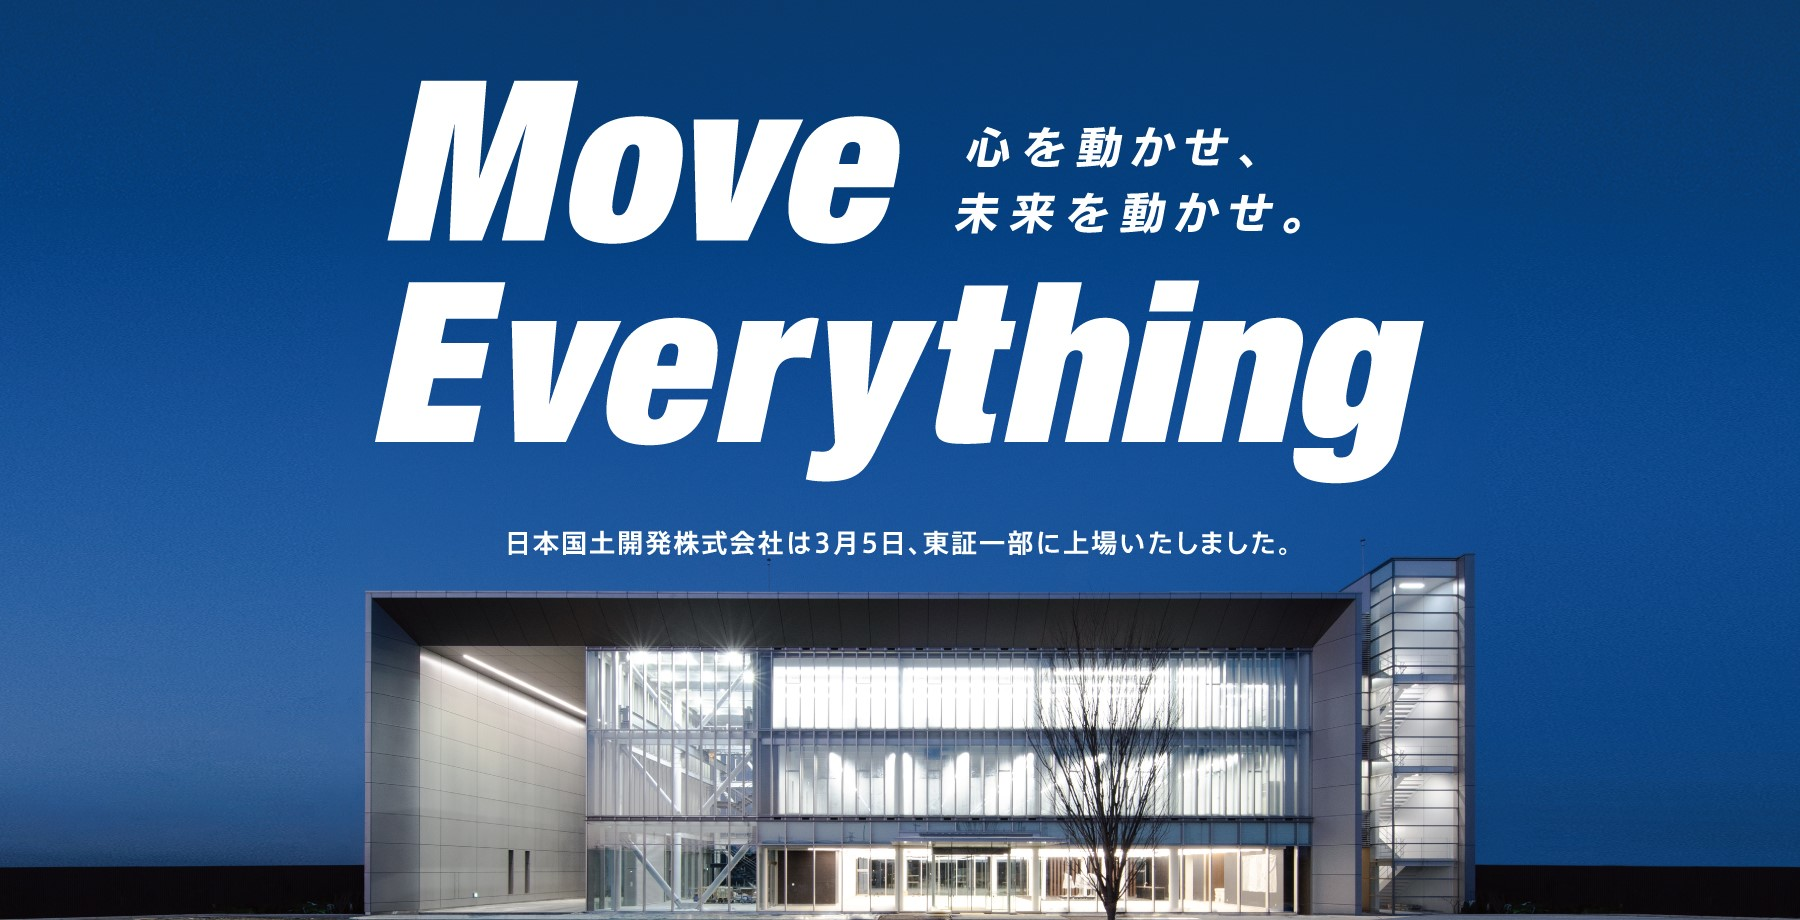 Move Everything